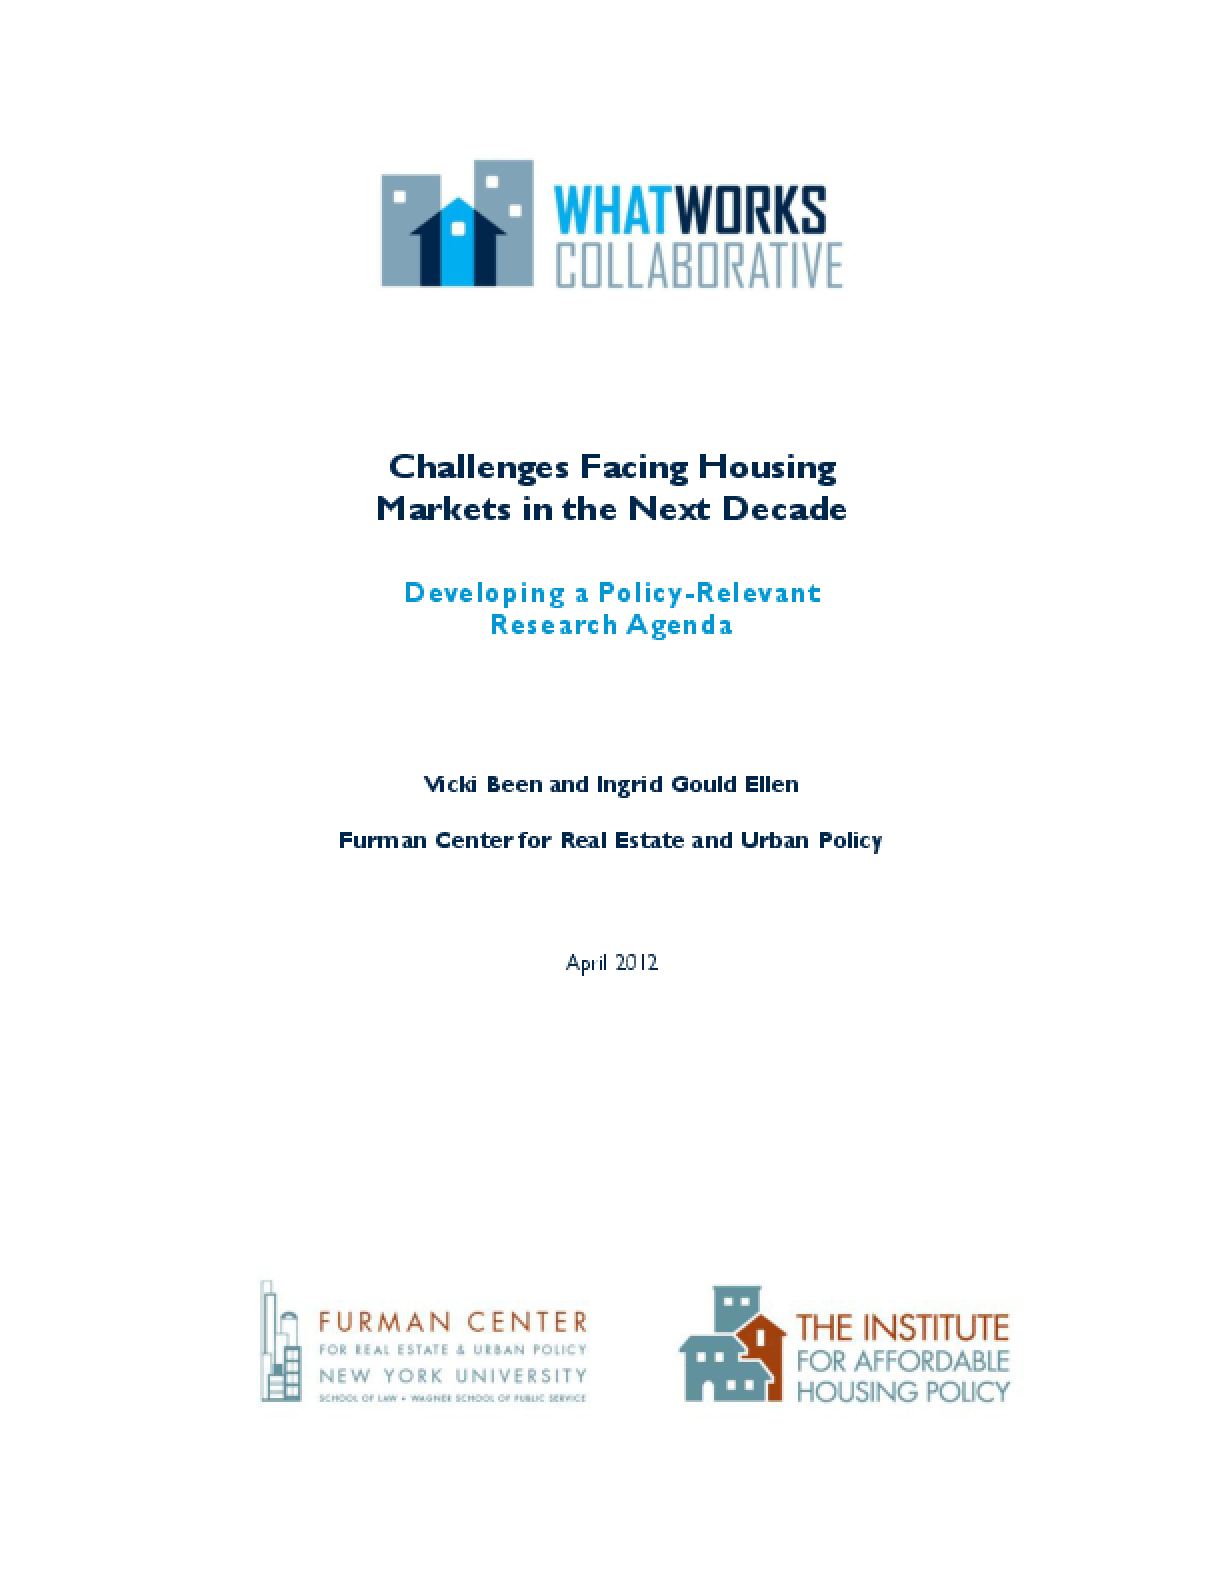 Challenges Facing Housing Markets in the Next Decade, Developing a Policy-Relevant Research Agenda